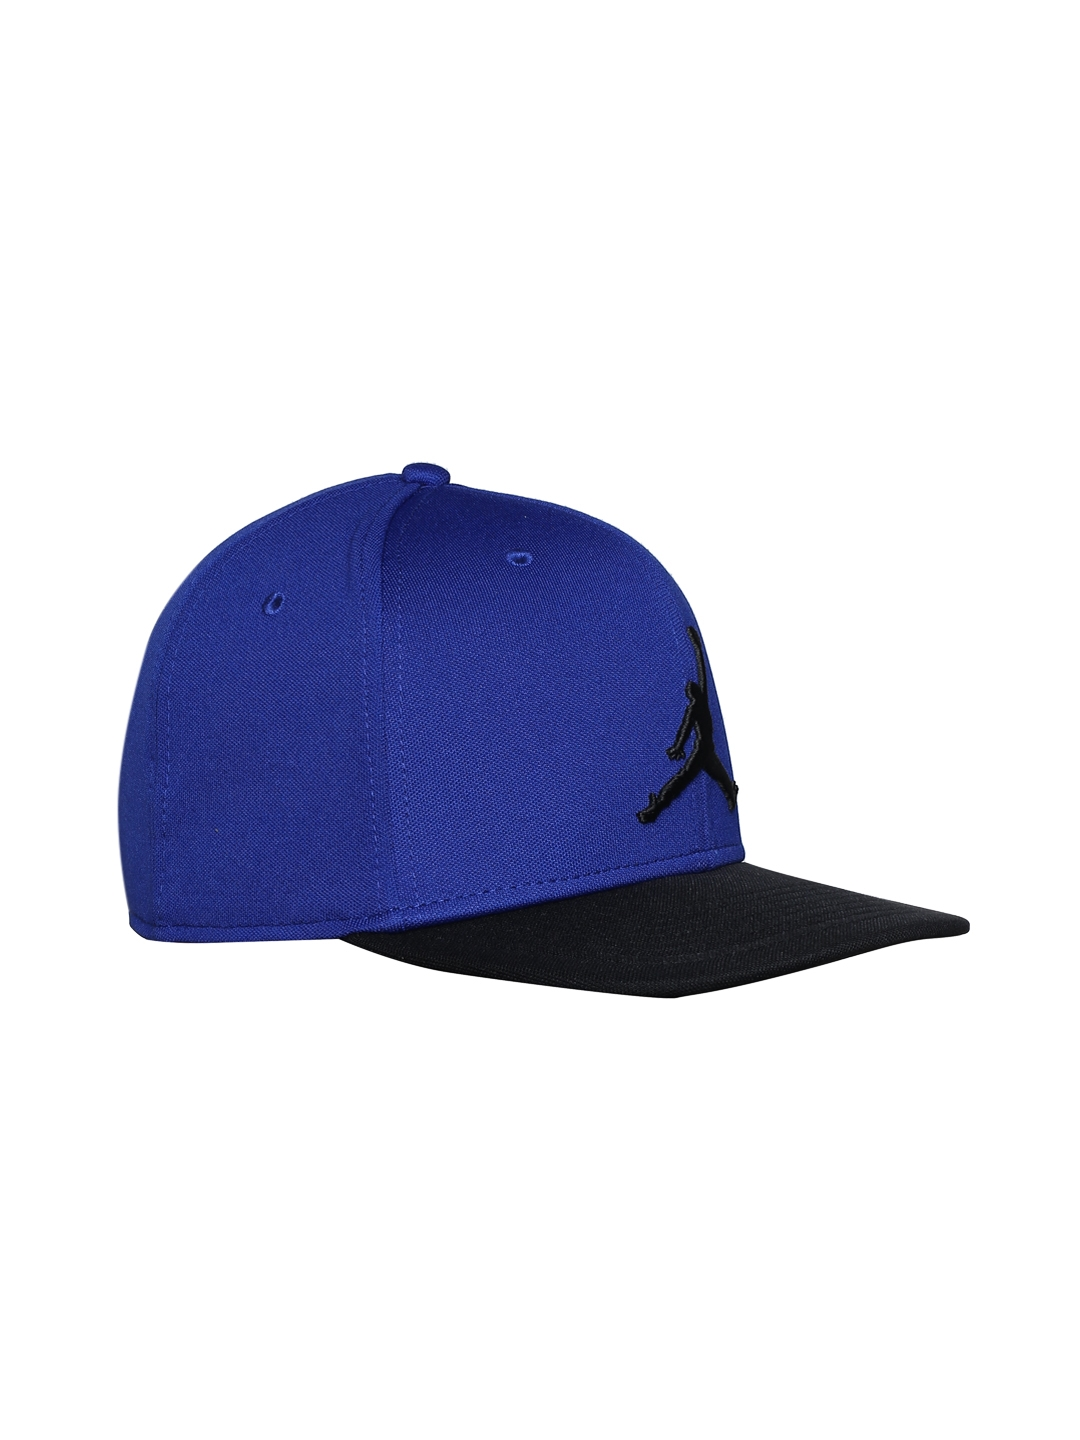 3aca78e2858 Buy Nike Unisex Blue Jordan Jumpman Baseball Cap - Caps for Unisex ...